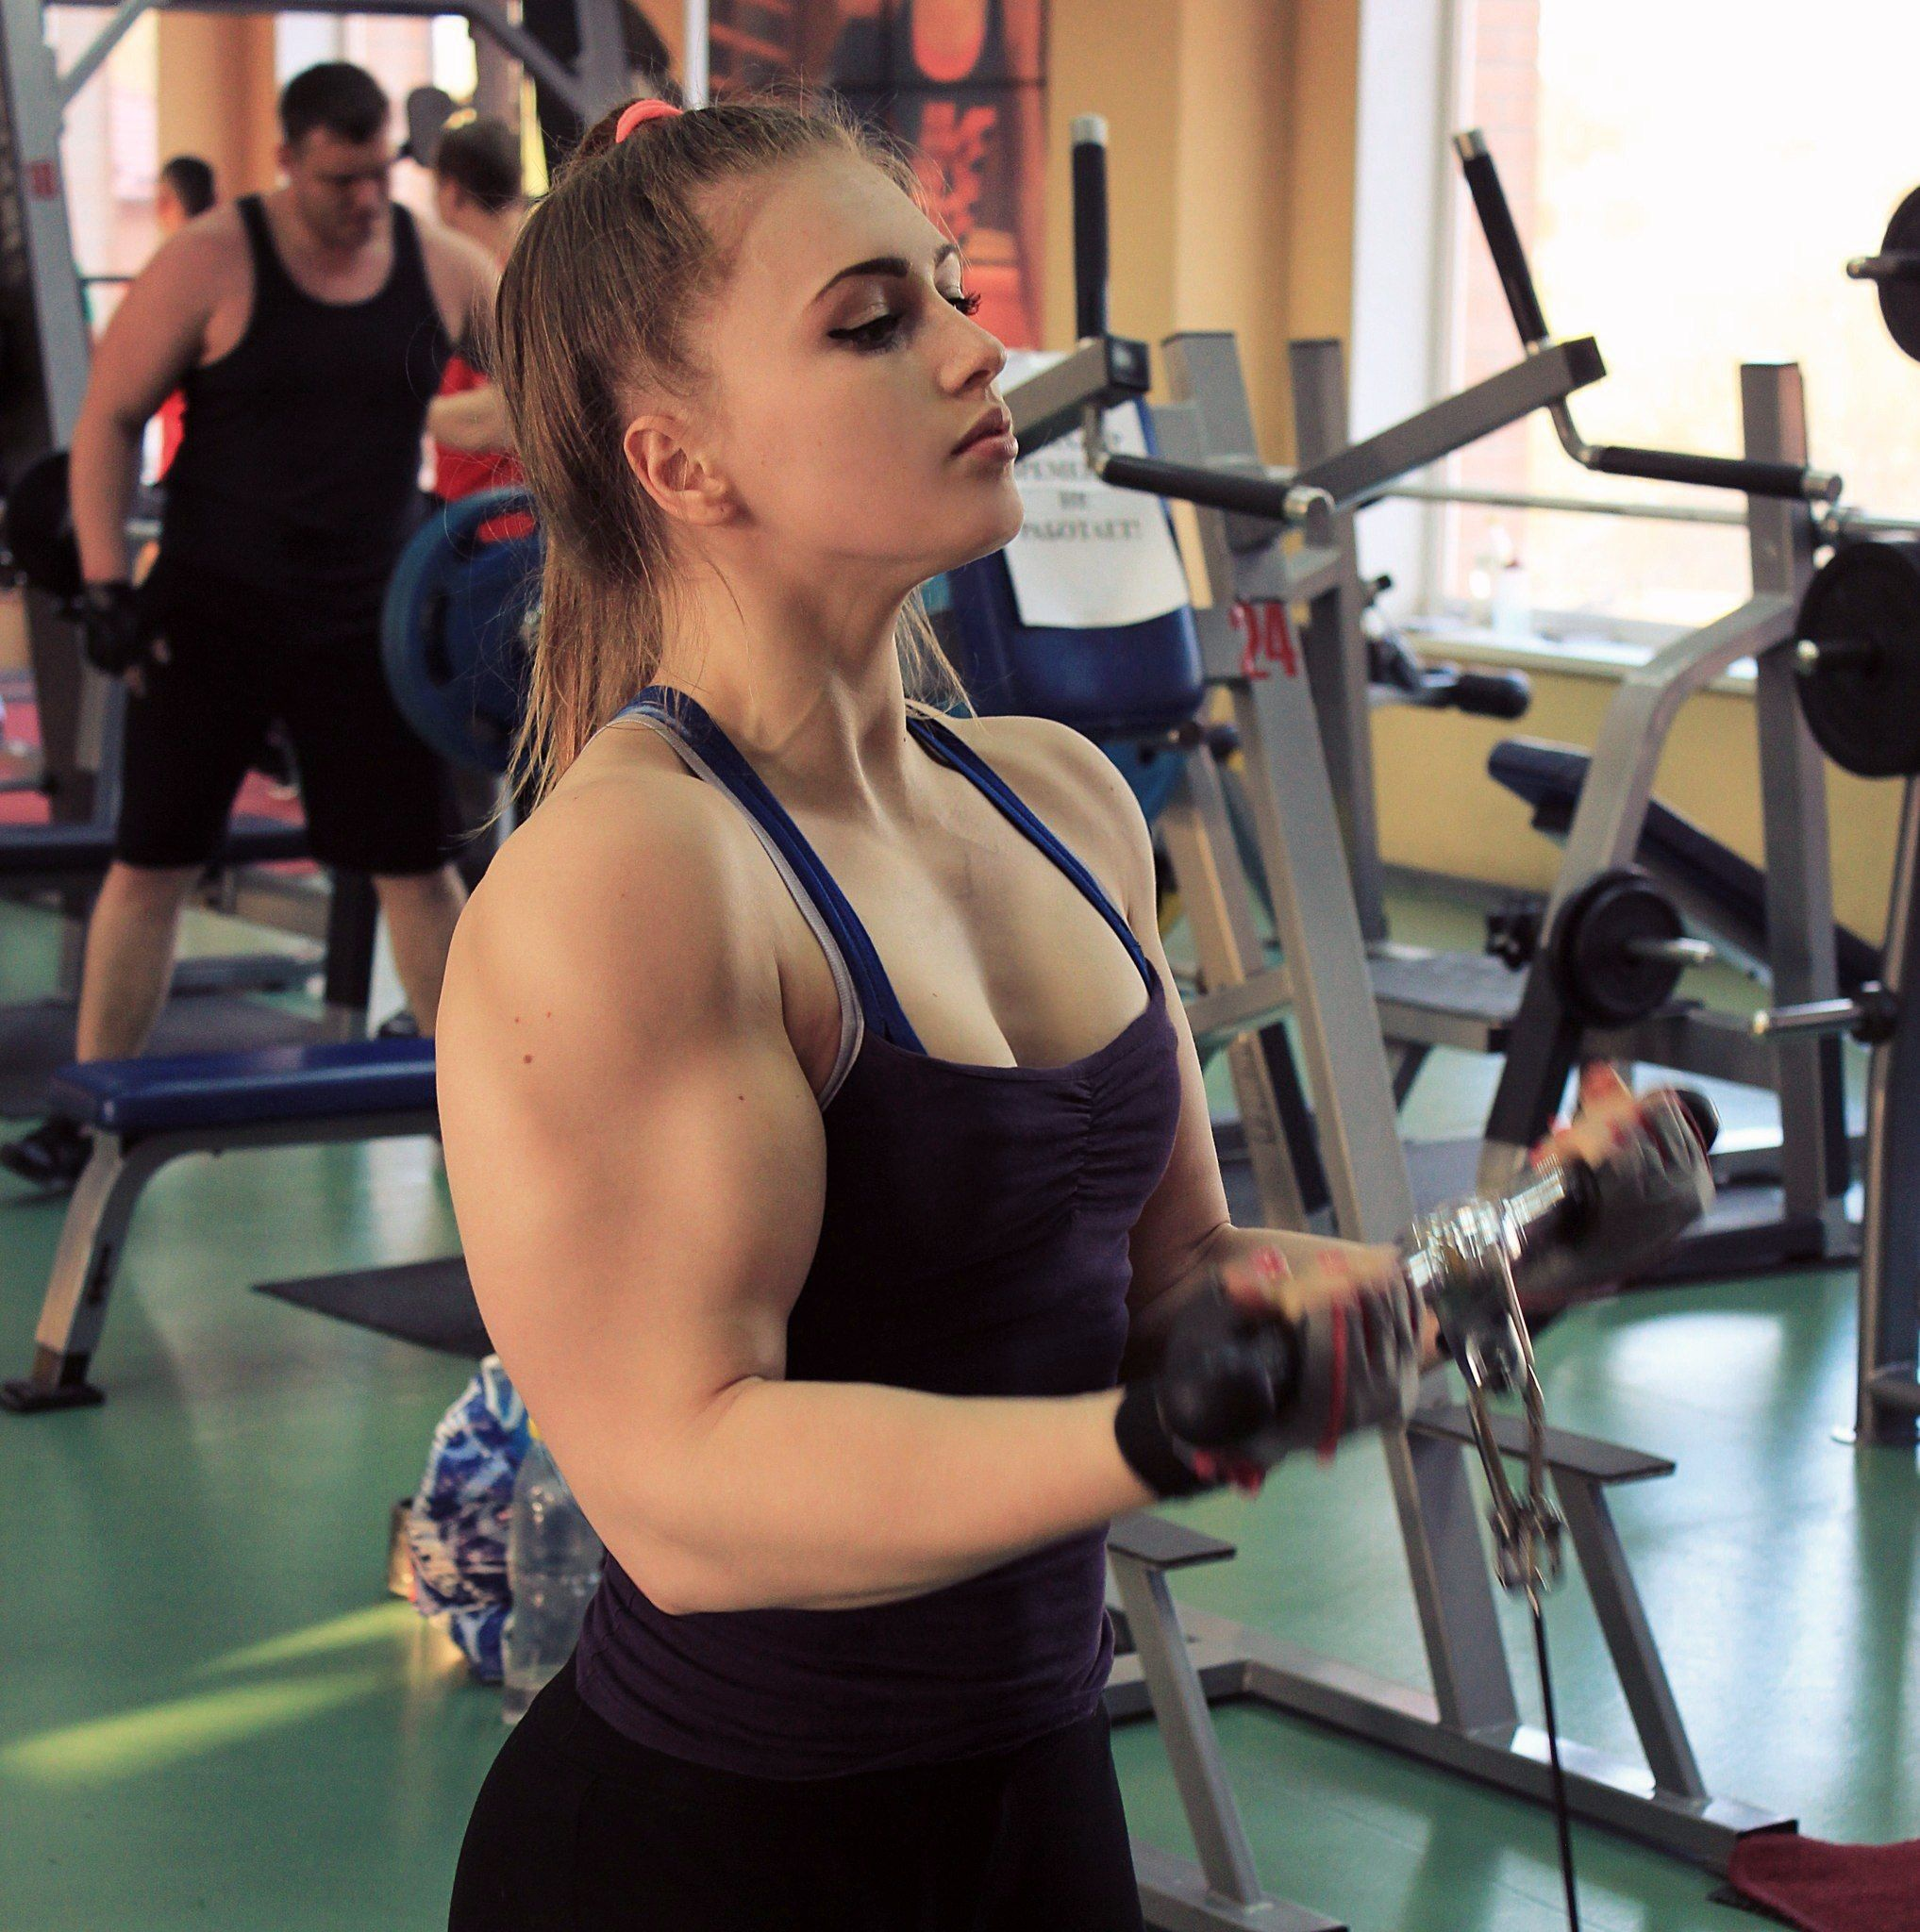 Muskel Training 18 Year Old Powerlifter Julia Vins